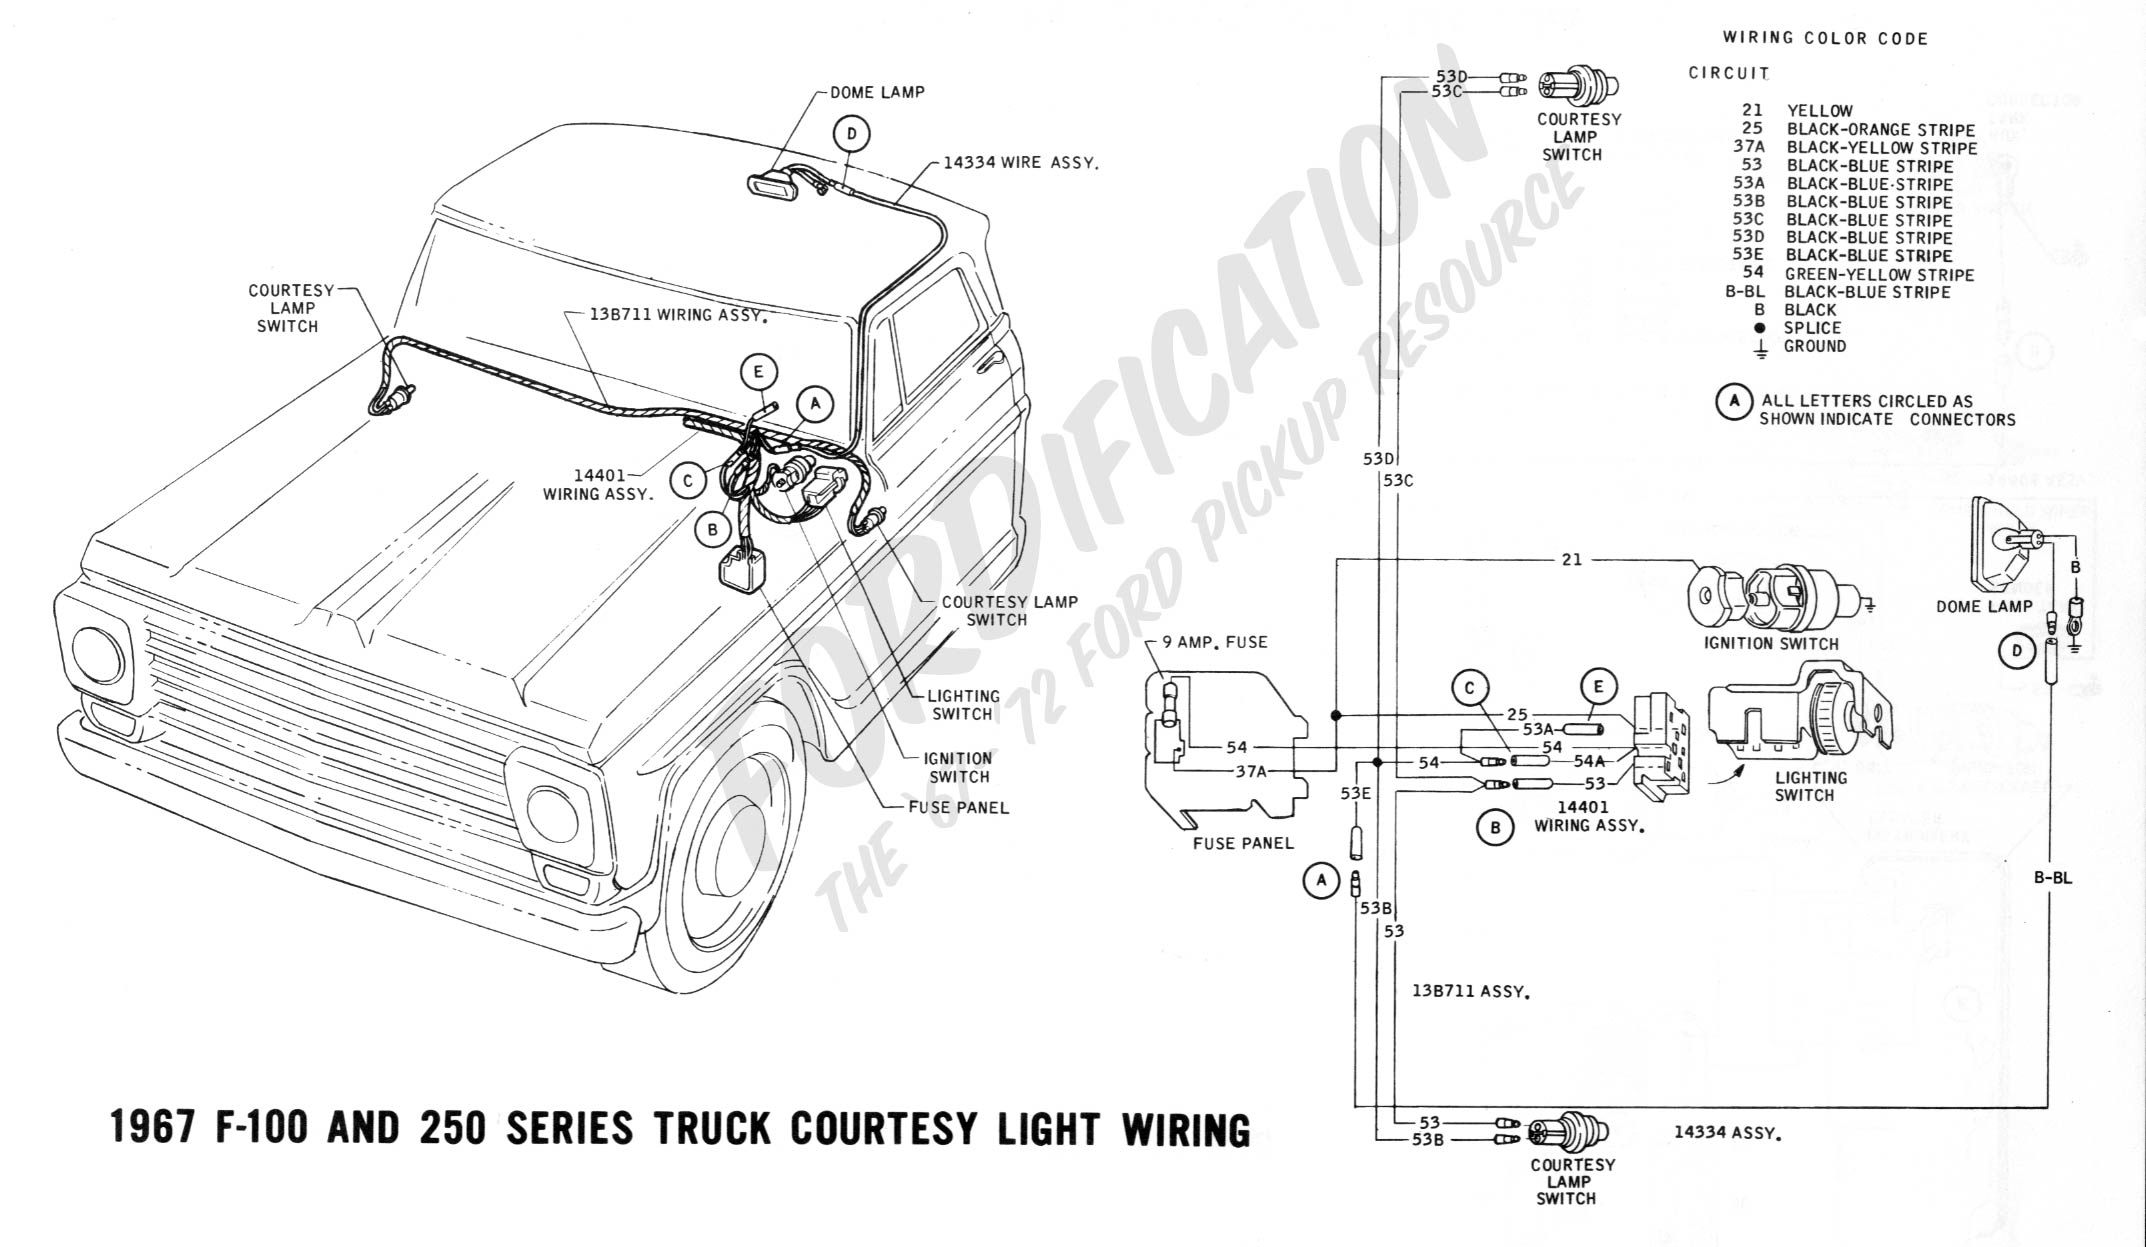 wiring 1967courtesylight ford truck technical drawings and schematics section h wiring ford truck wiring diagrams free at webbmarketing.co